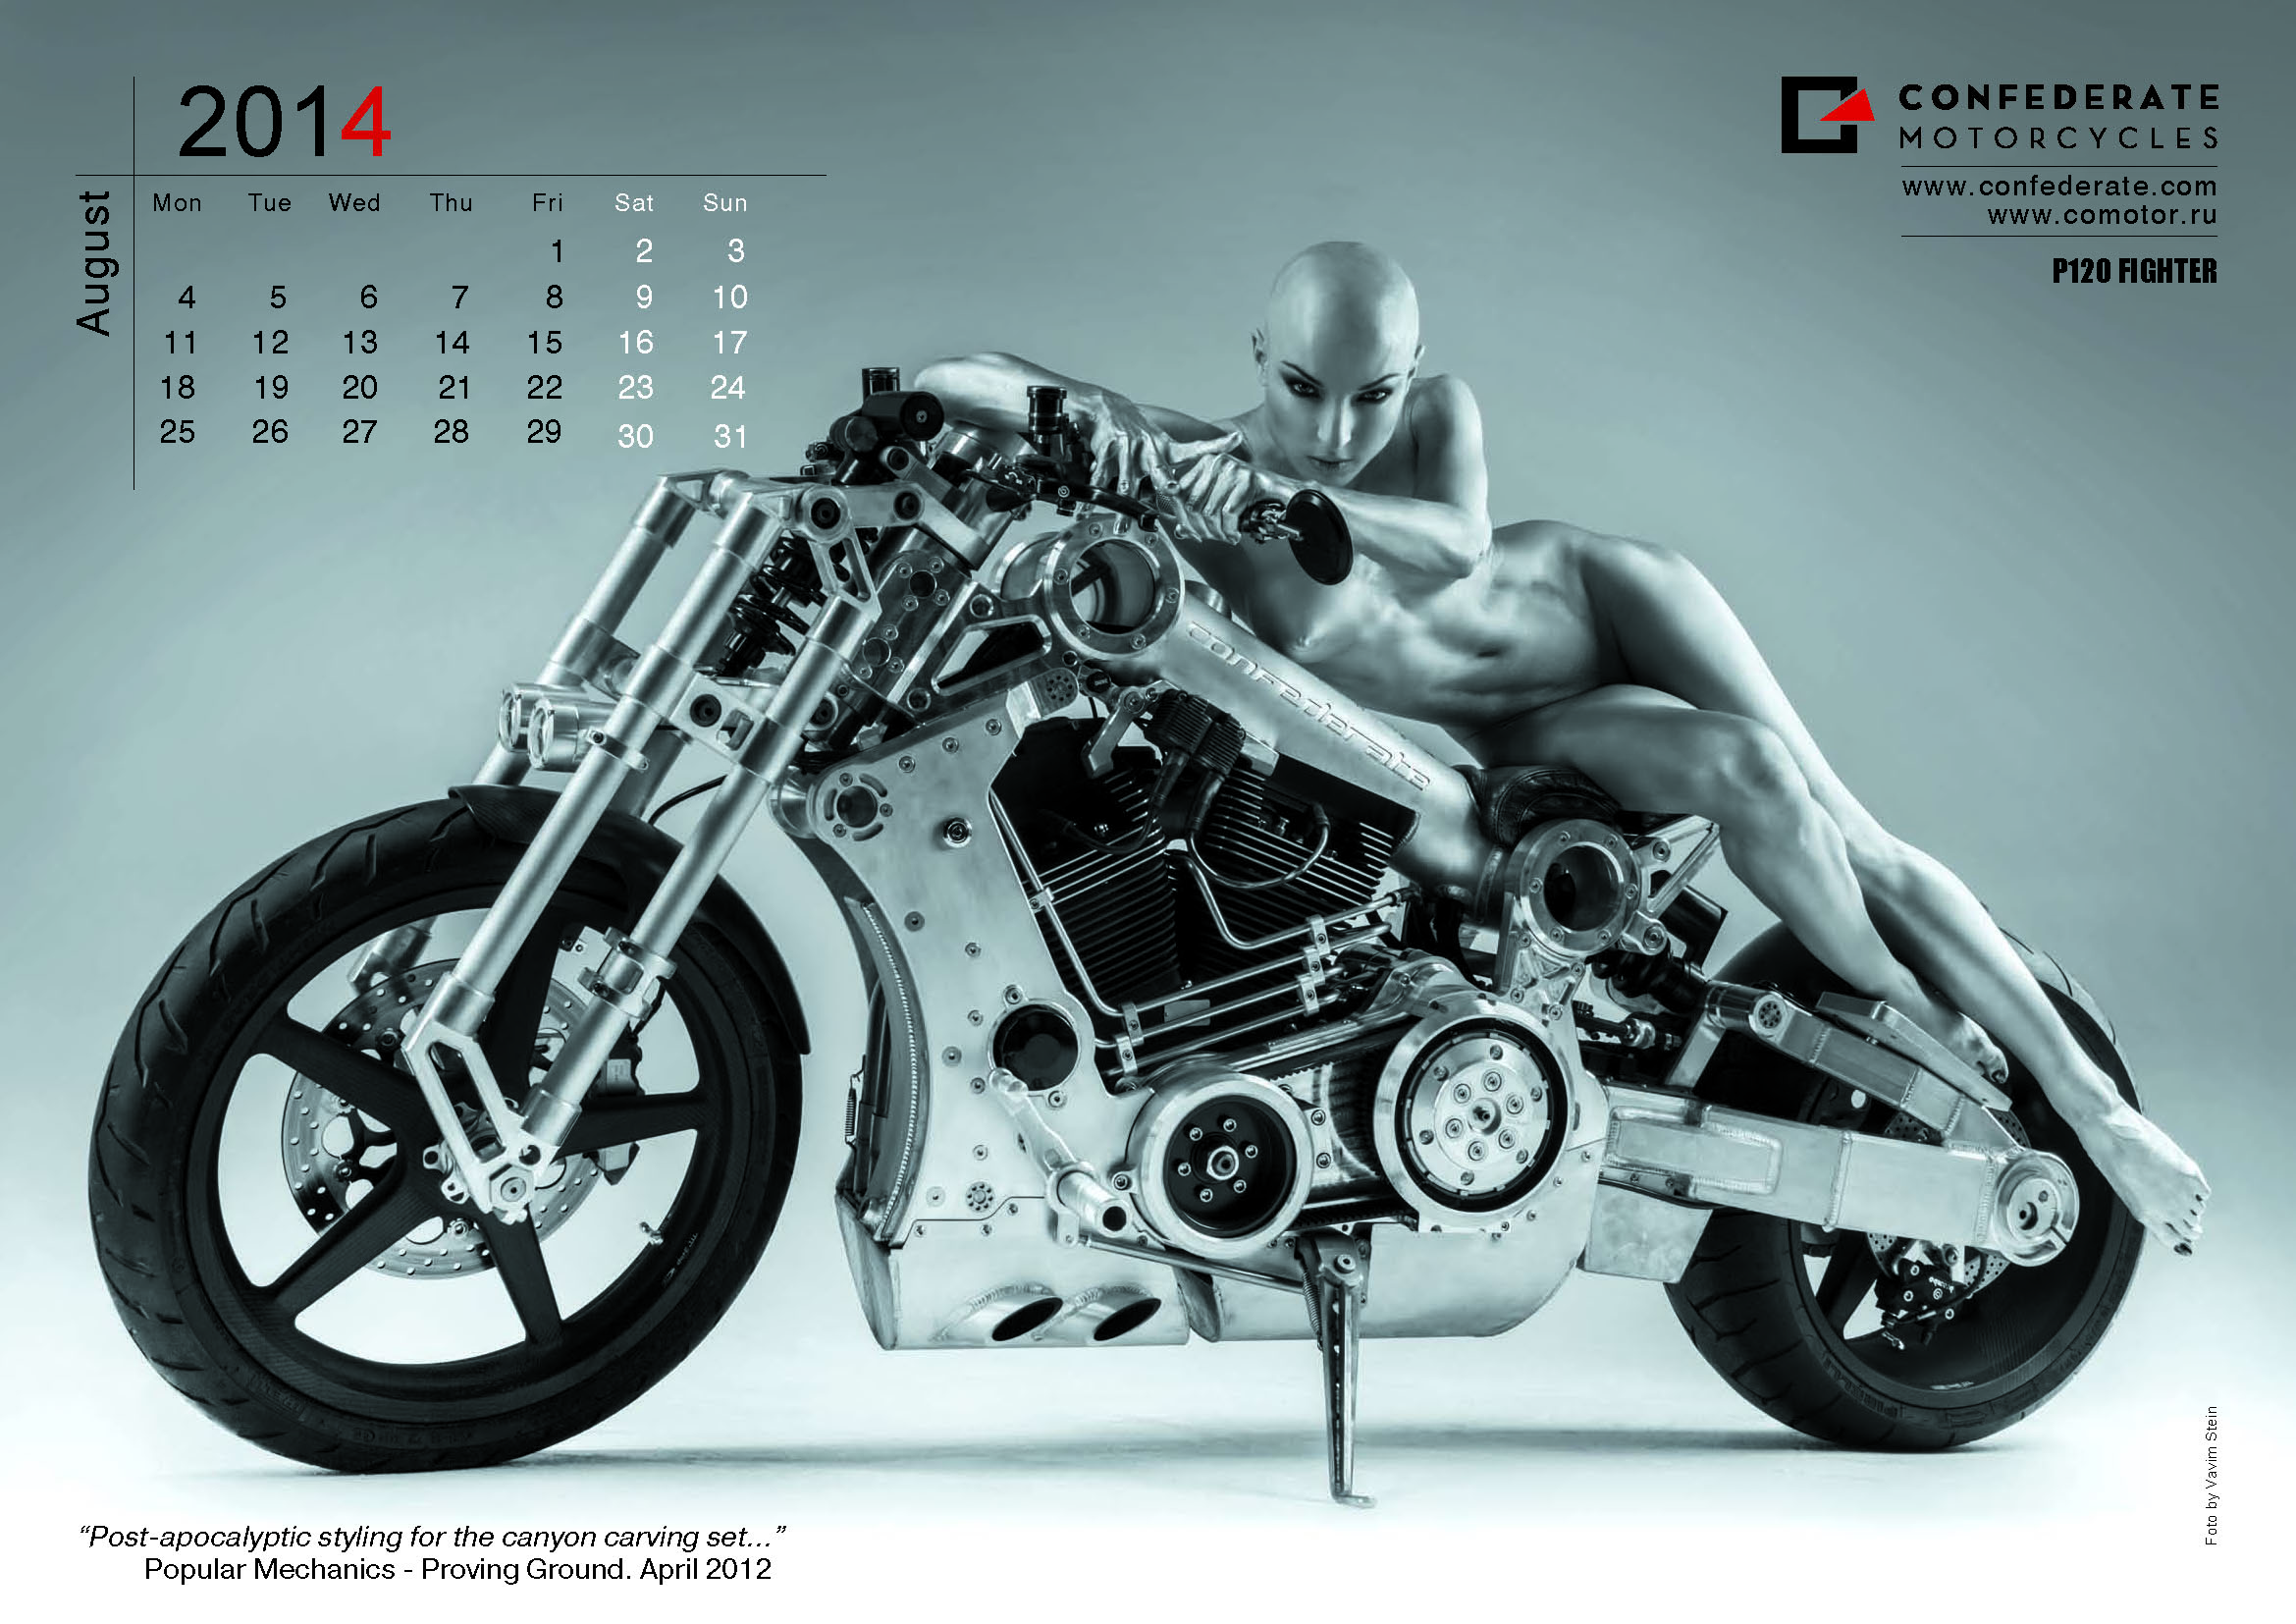 Calendrier motard 2014 - Confederate_2014_Page_09